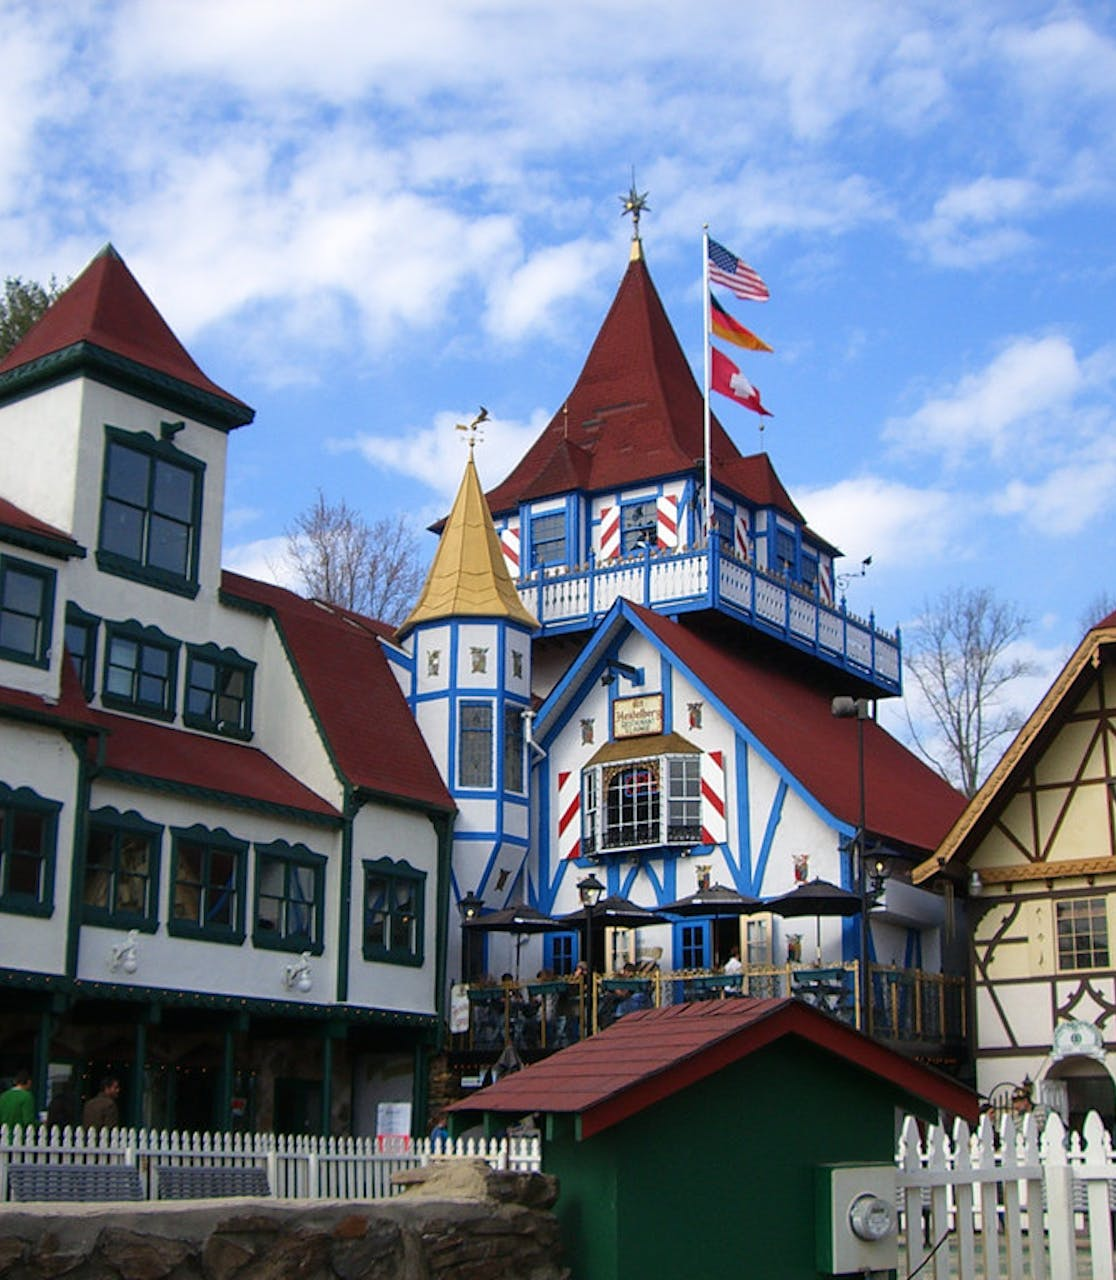 bavarian style buildings in downtown Helen, GA